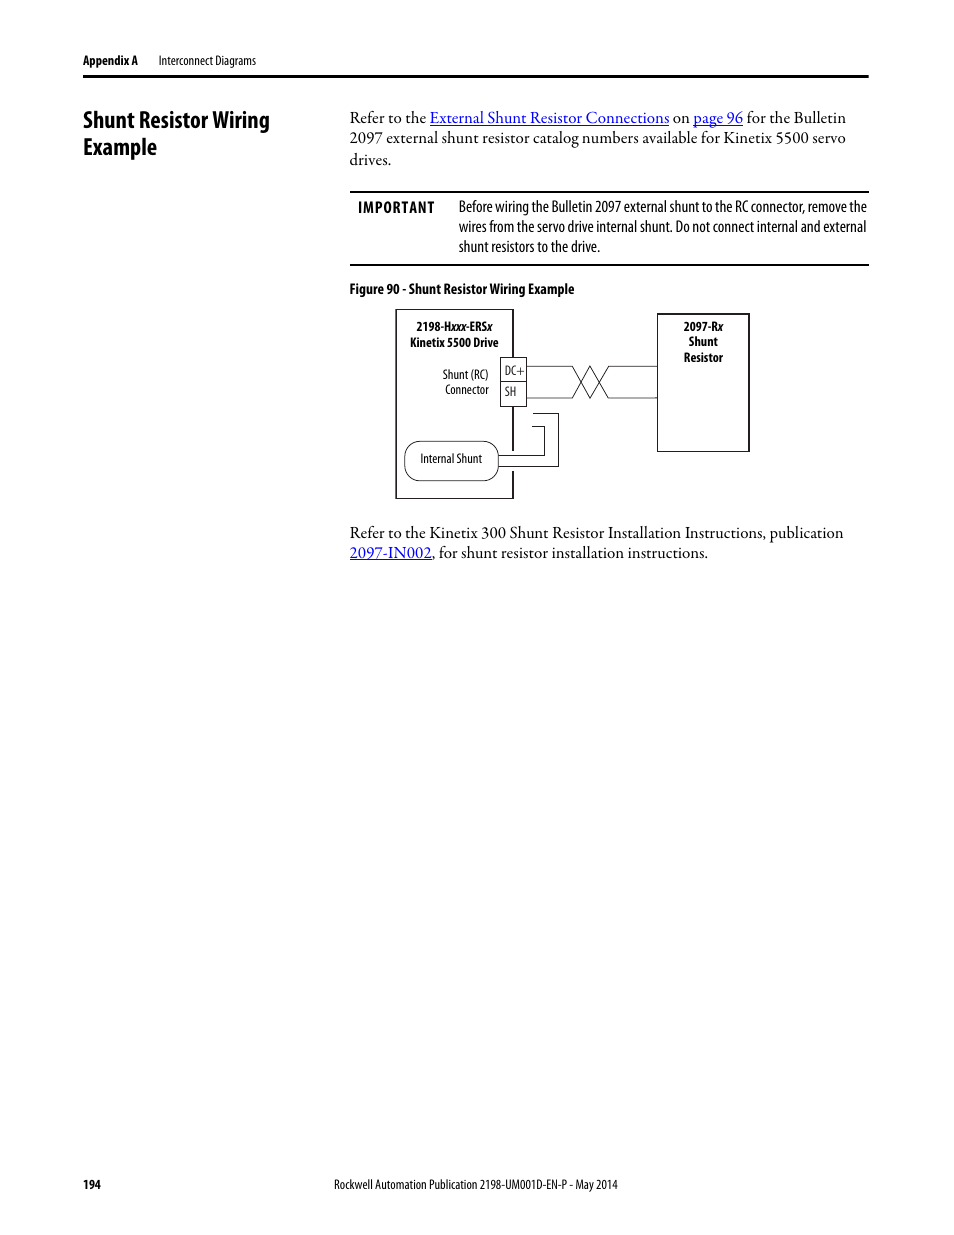 hight resolution of shunt resistor wiring example rockwell automation 2198 hxxx kinetix 5500 servo drives user manual user manual page 194 244